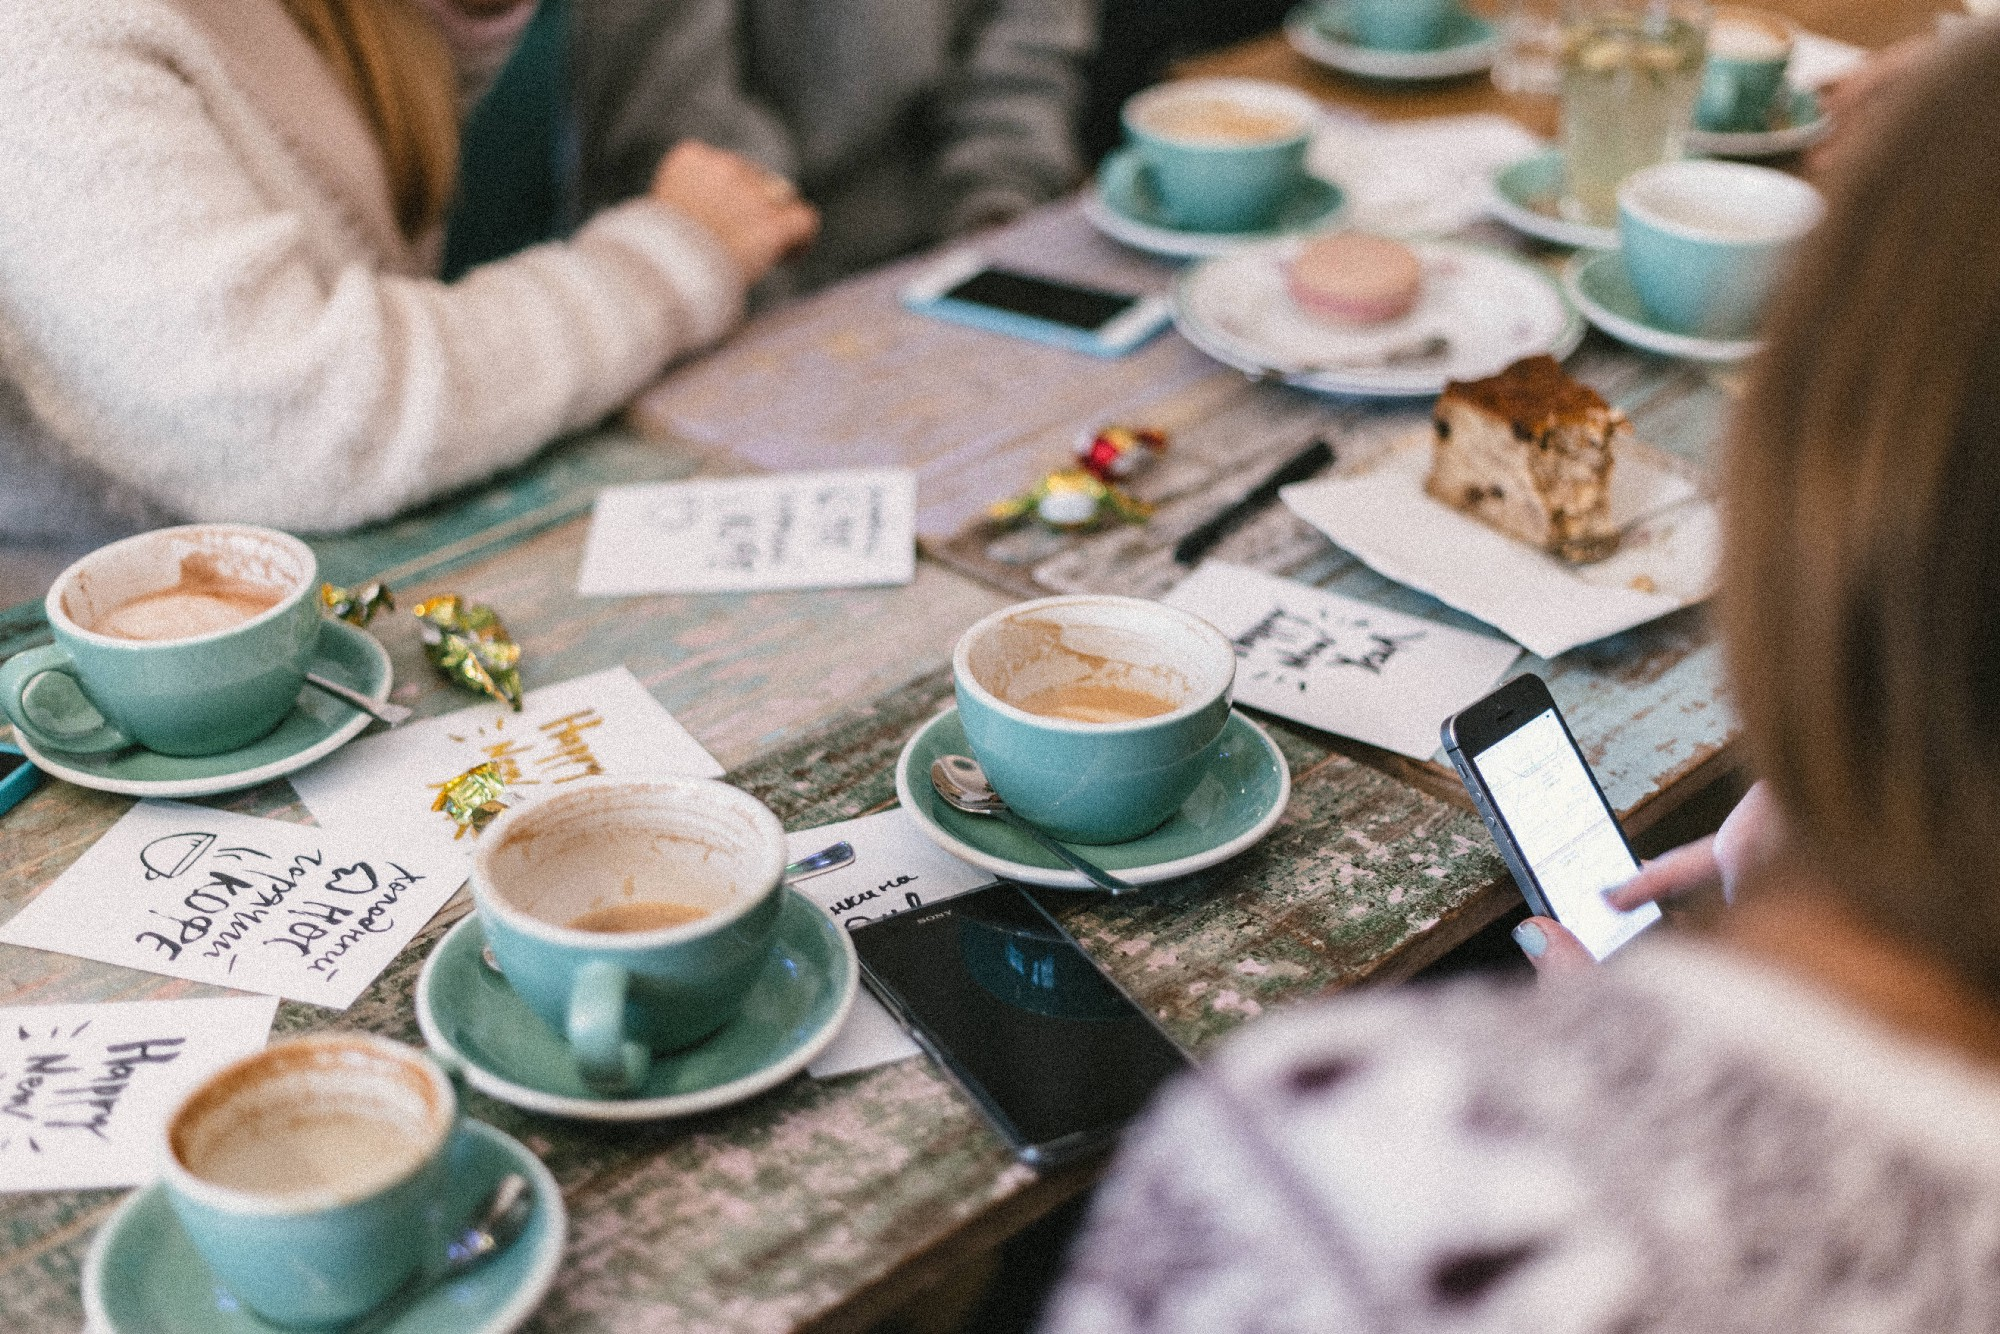 People drinking coffee around the table